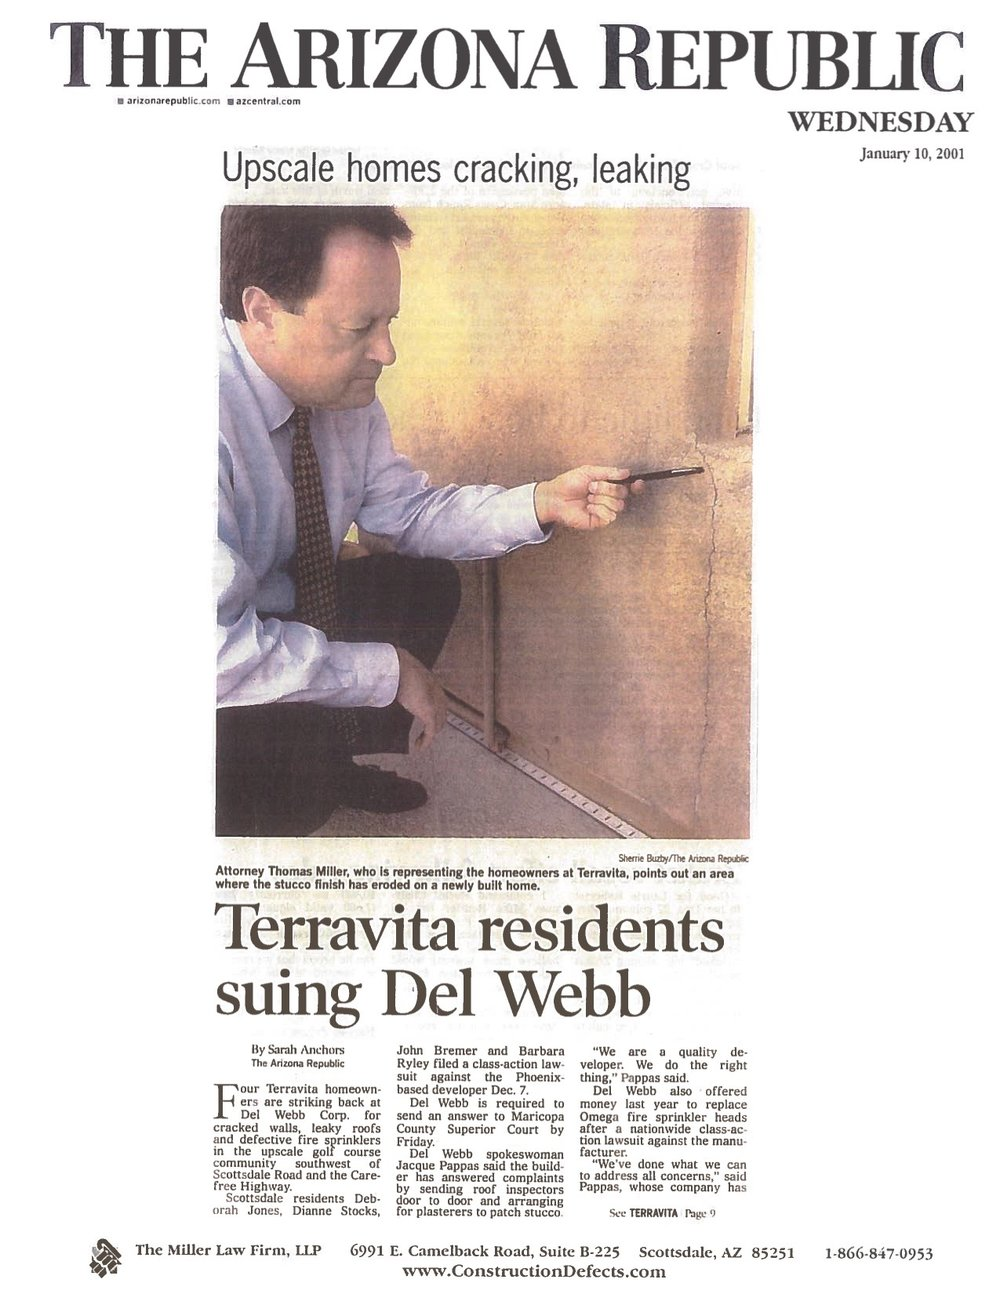 Arizona Republic - Upscale Homes Cracking, Leaking